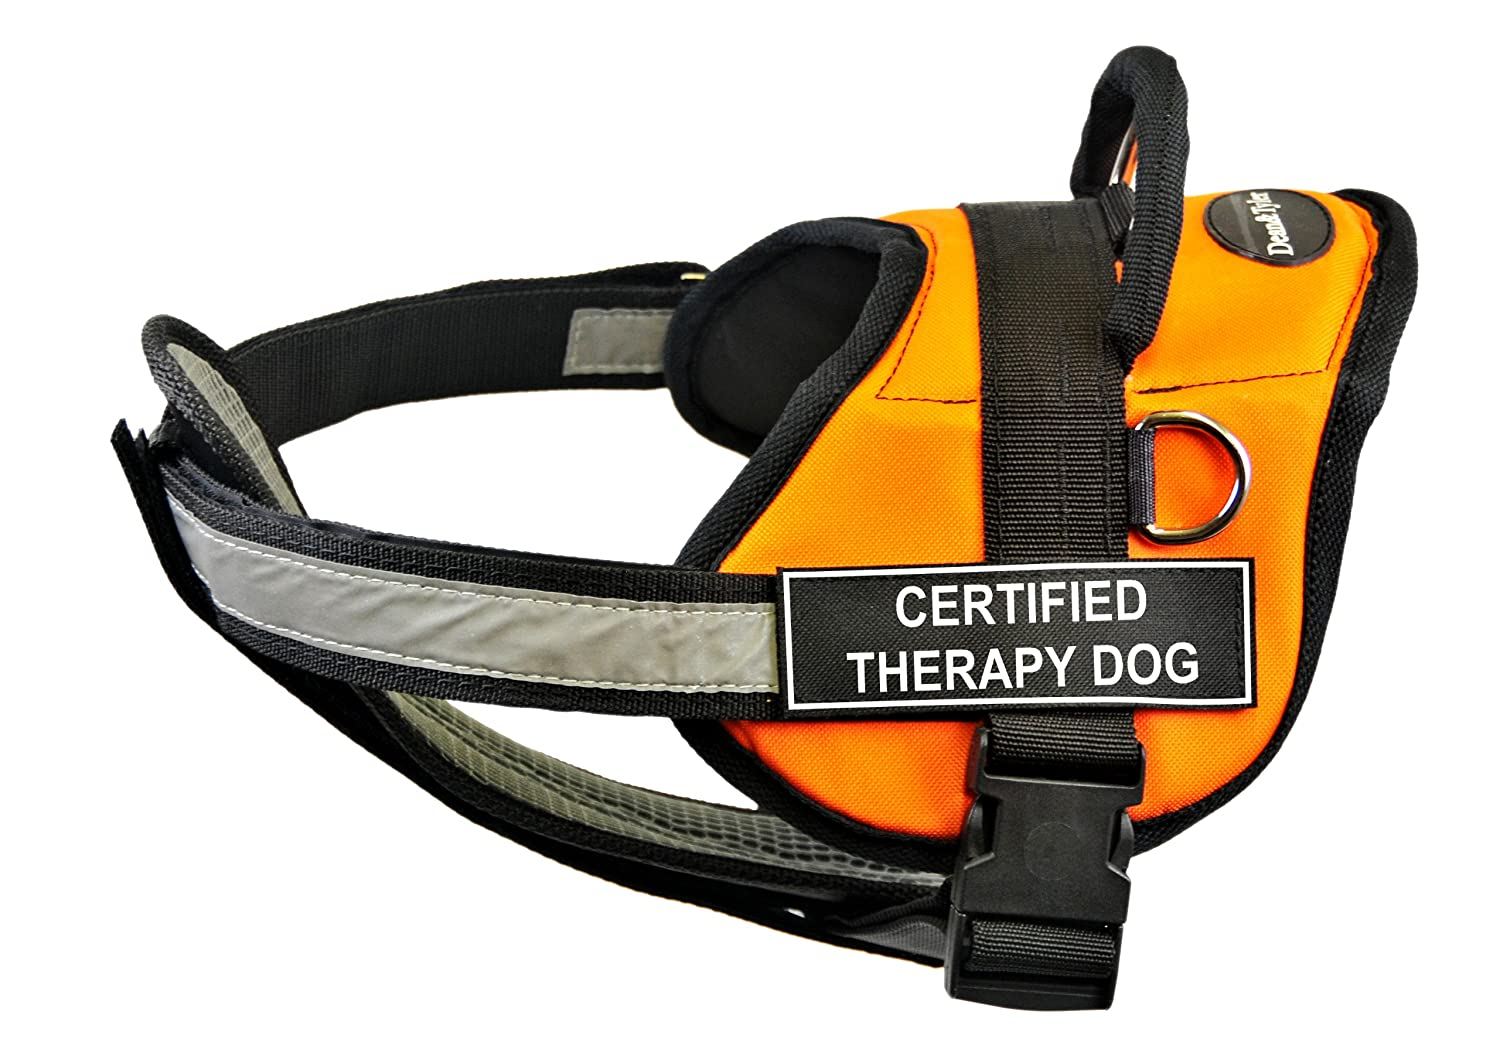 Dean & Tyler 25-Inch to 34-Inch Certified Therapy Dog Harness with Padded Reflective Chest Straps, Small, orange Black